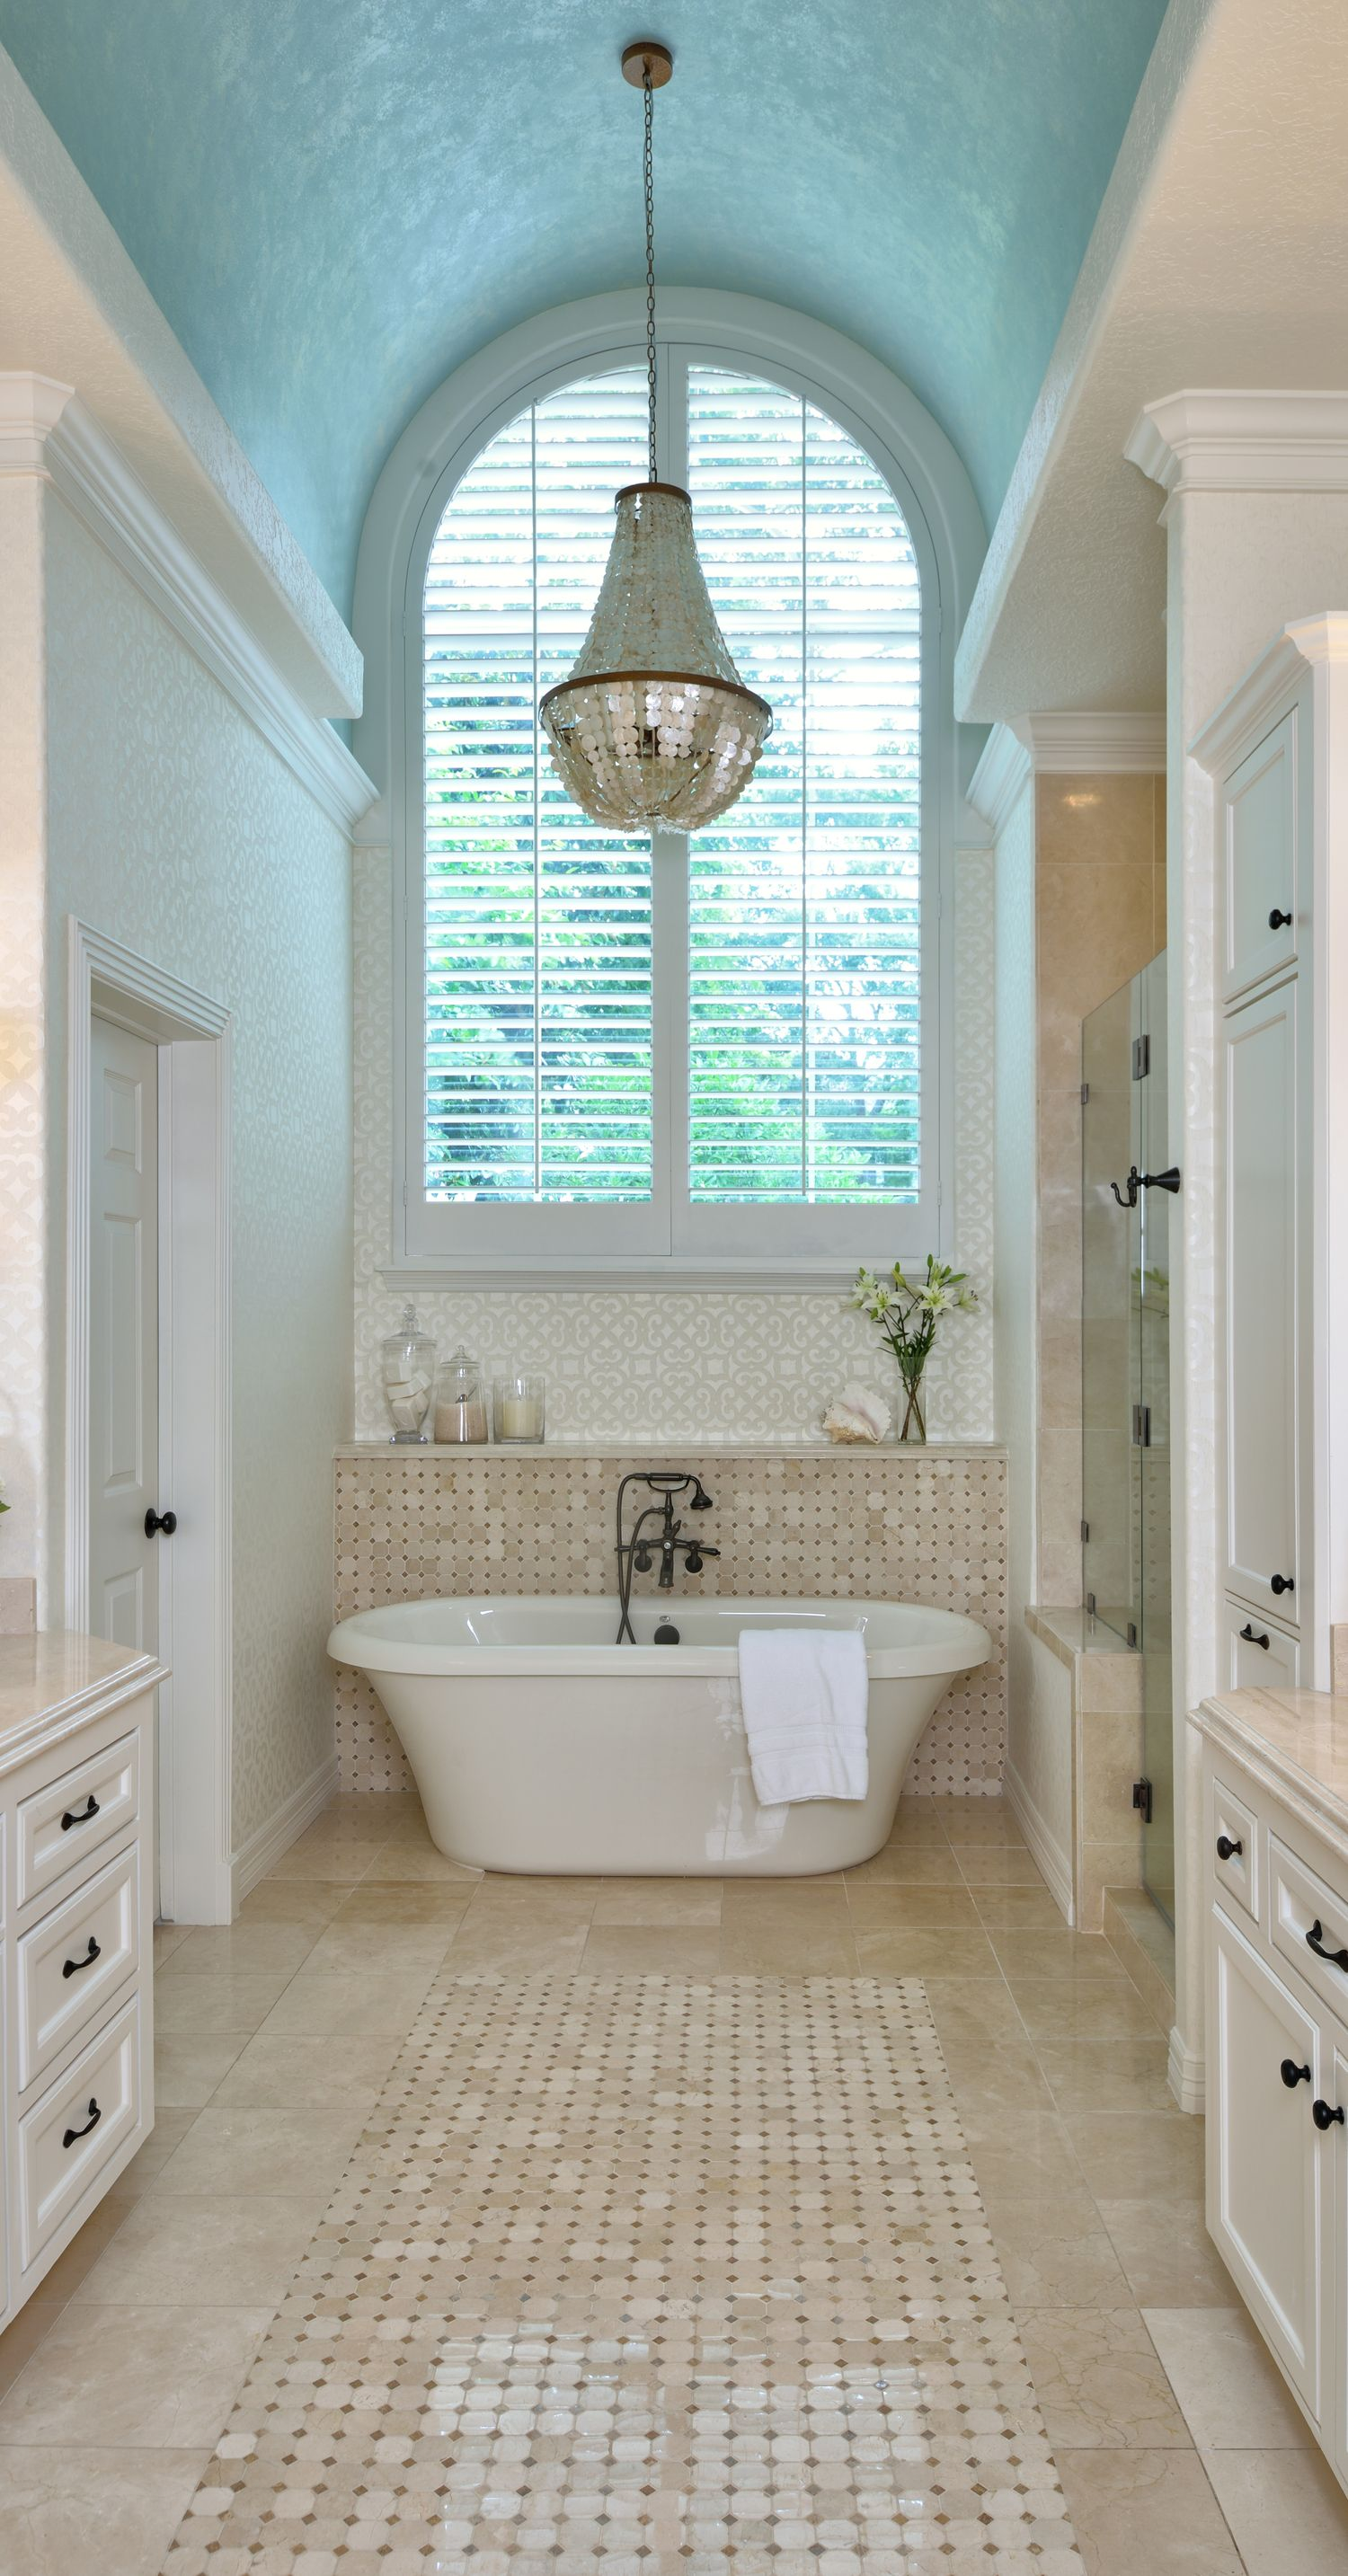 top 10 bathroom design trends guaranteed to freshen up on best bathroom renovation ideas get your dream bathroom id=69046